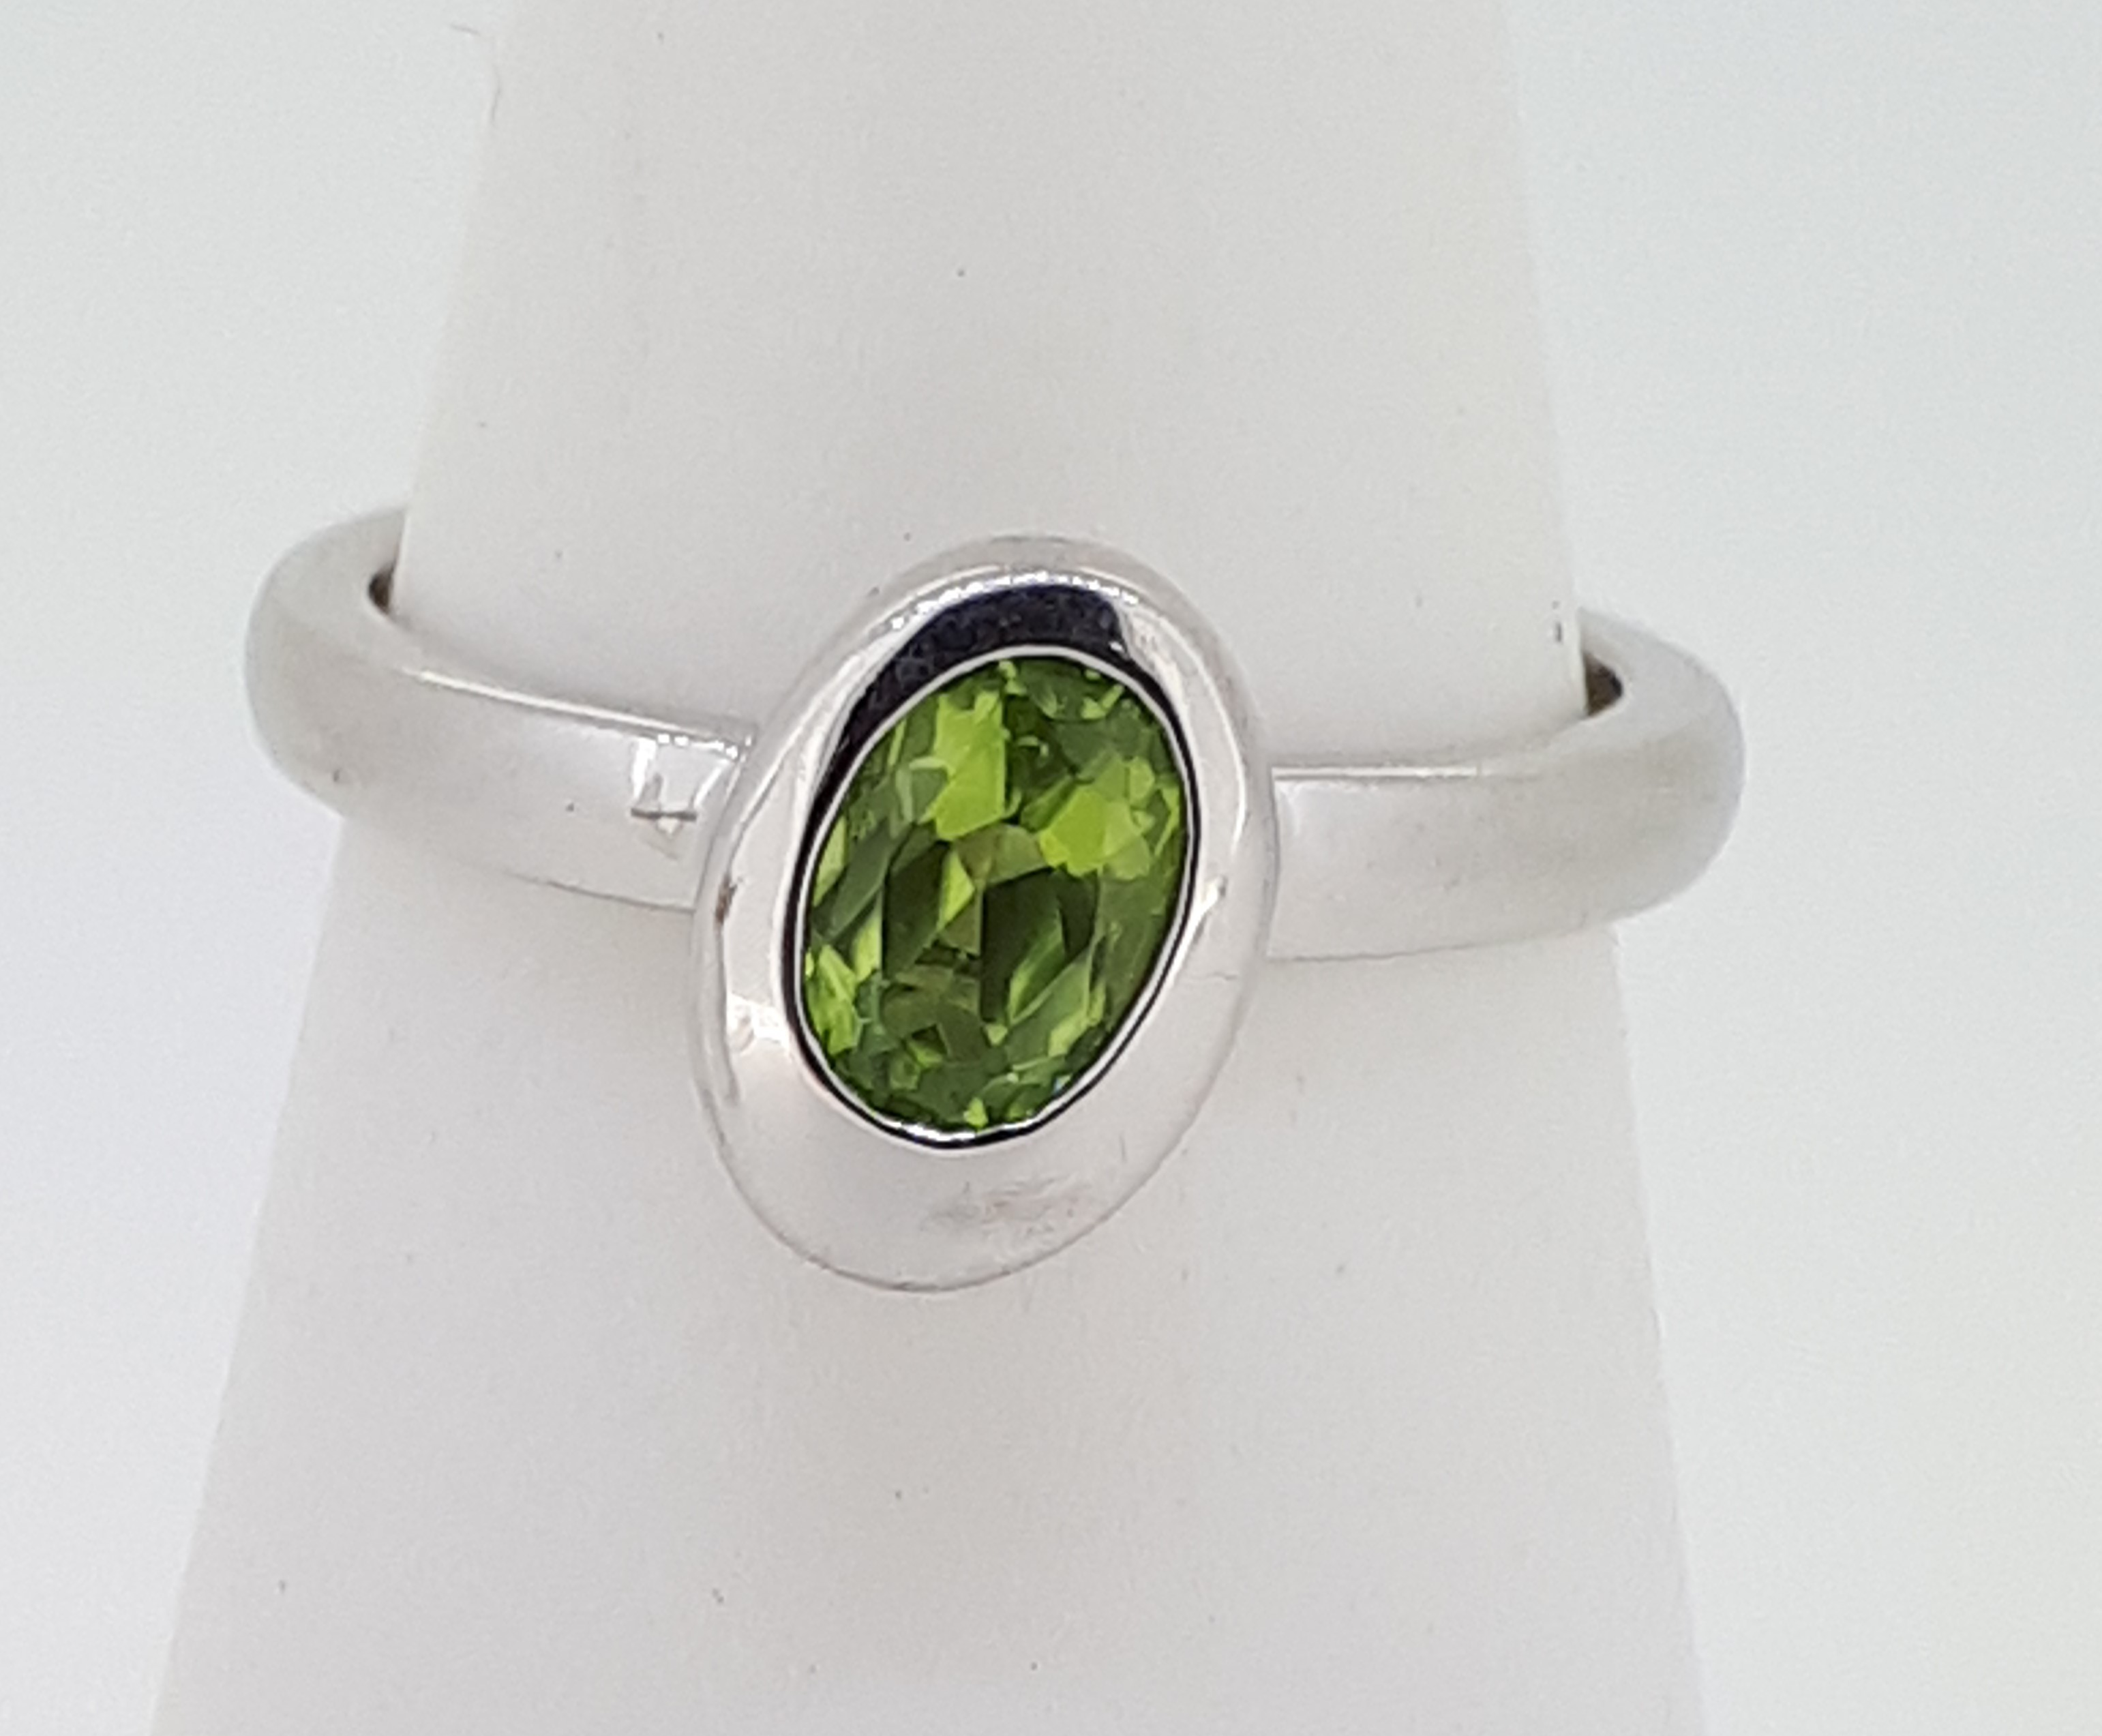 9ct (375) White Gold Oval Peridot Ring - Image 2 of 5